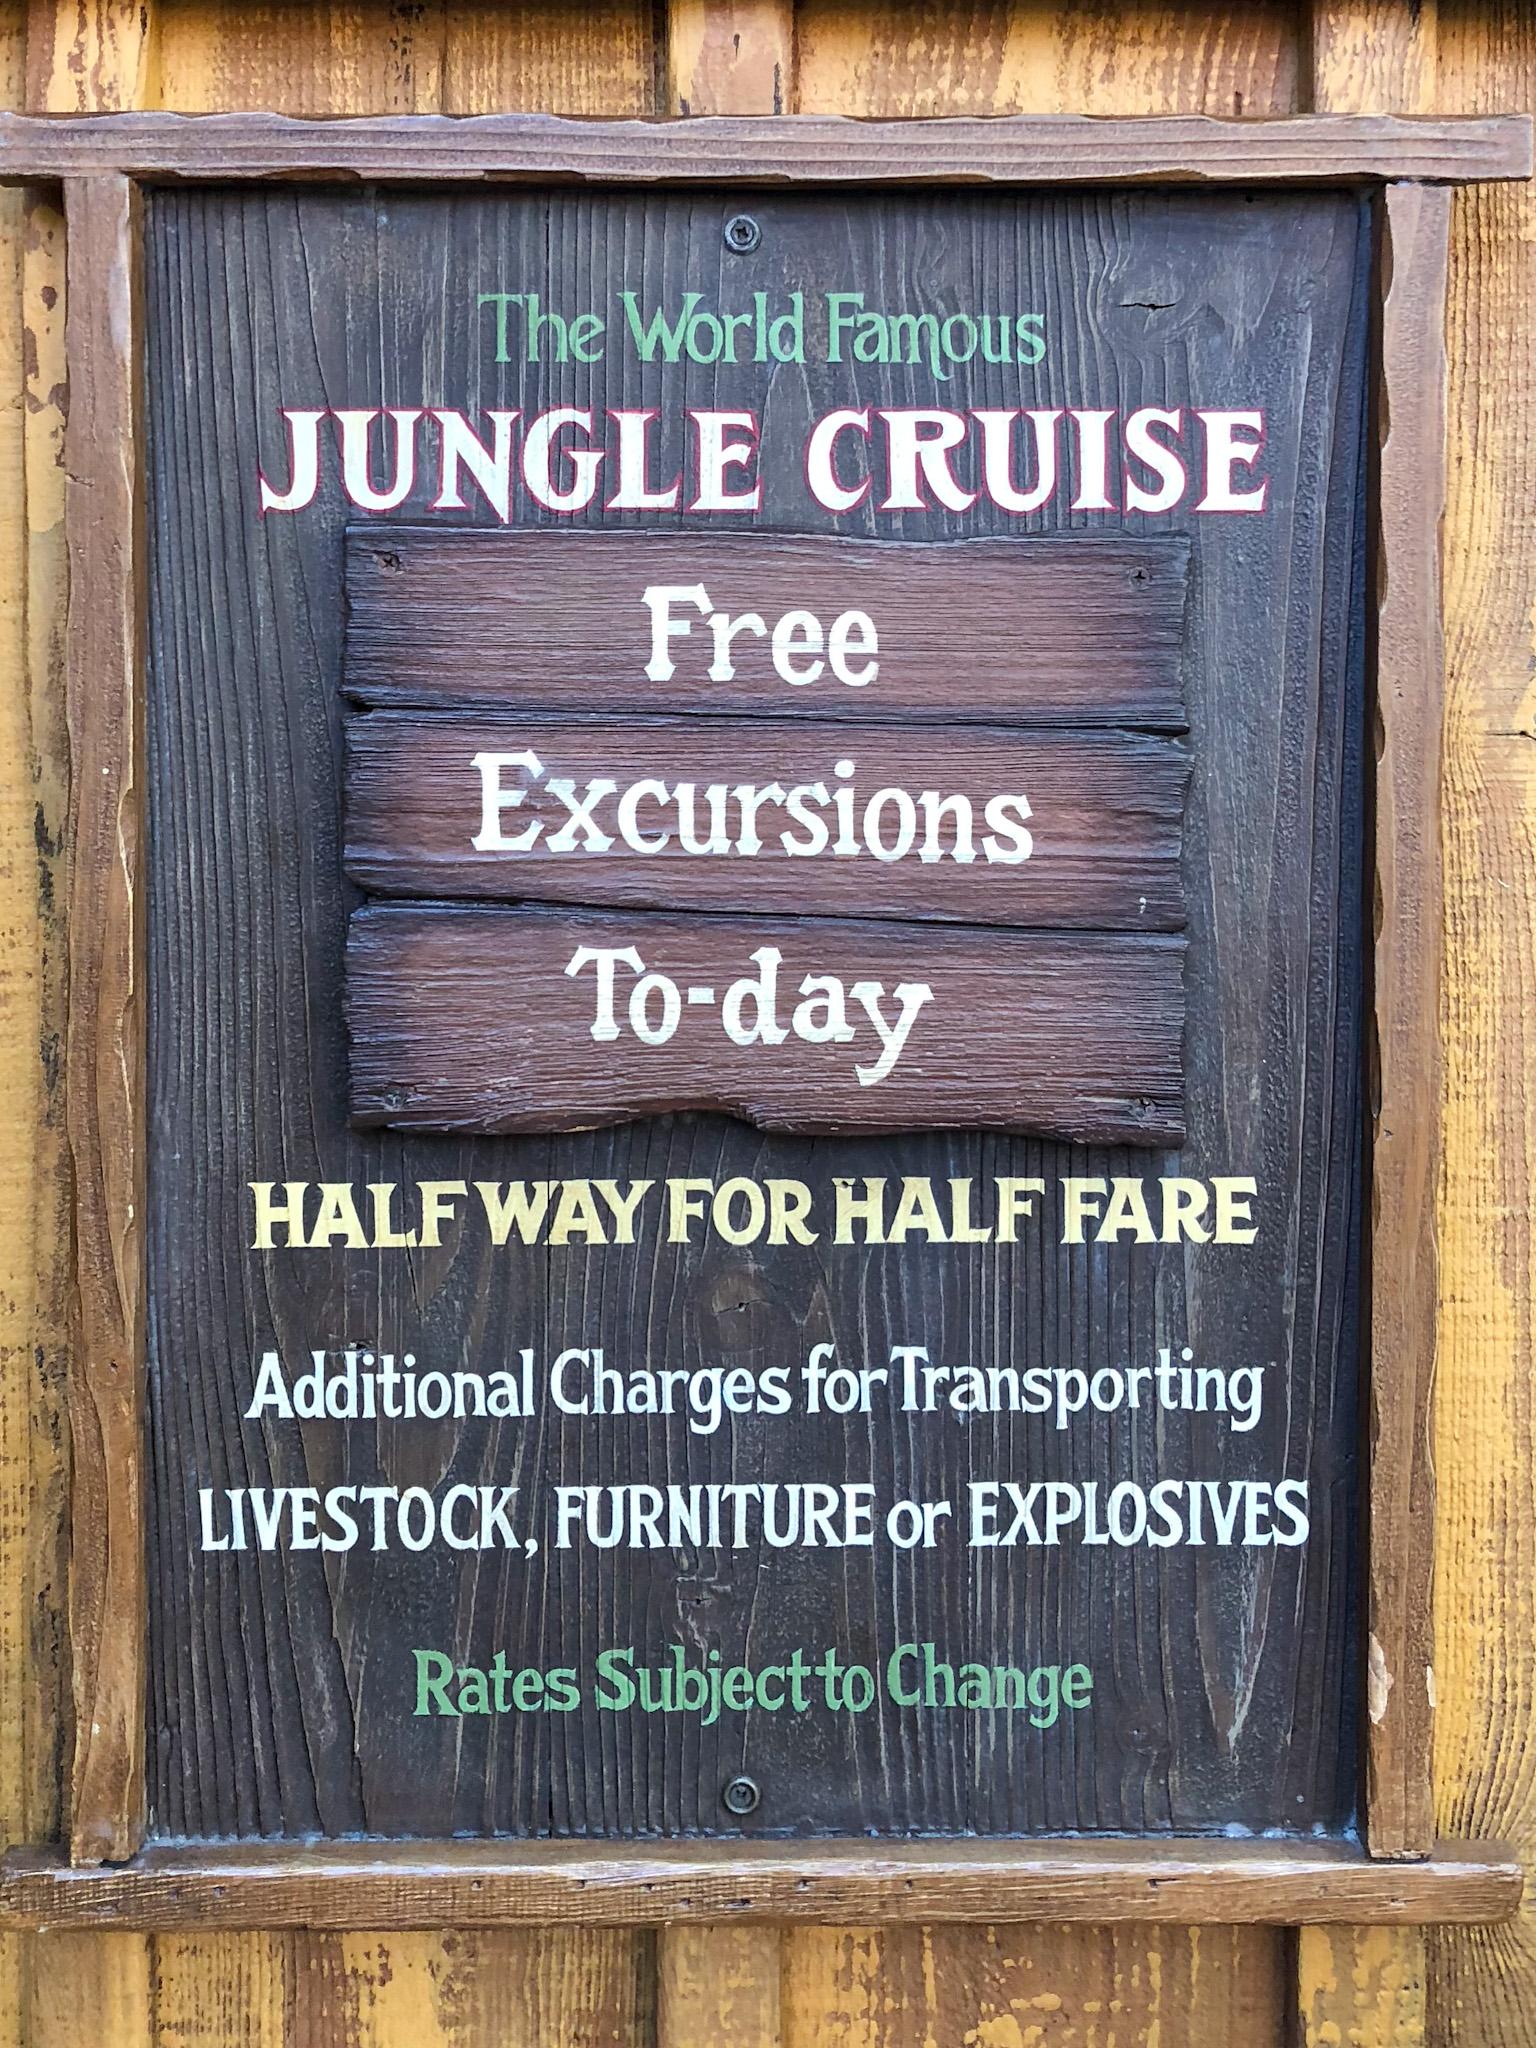 Jungle Cruise sign that offers free excursions, halfway for half fare